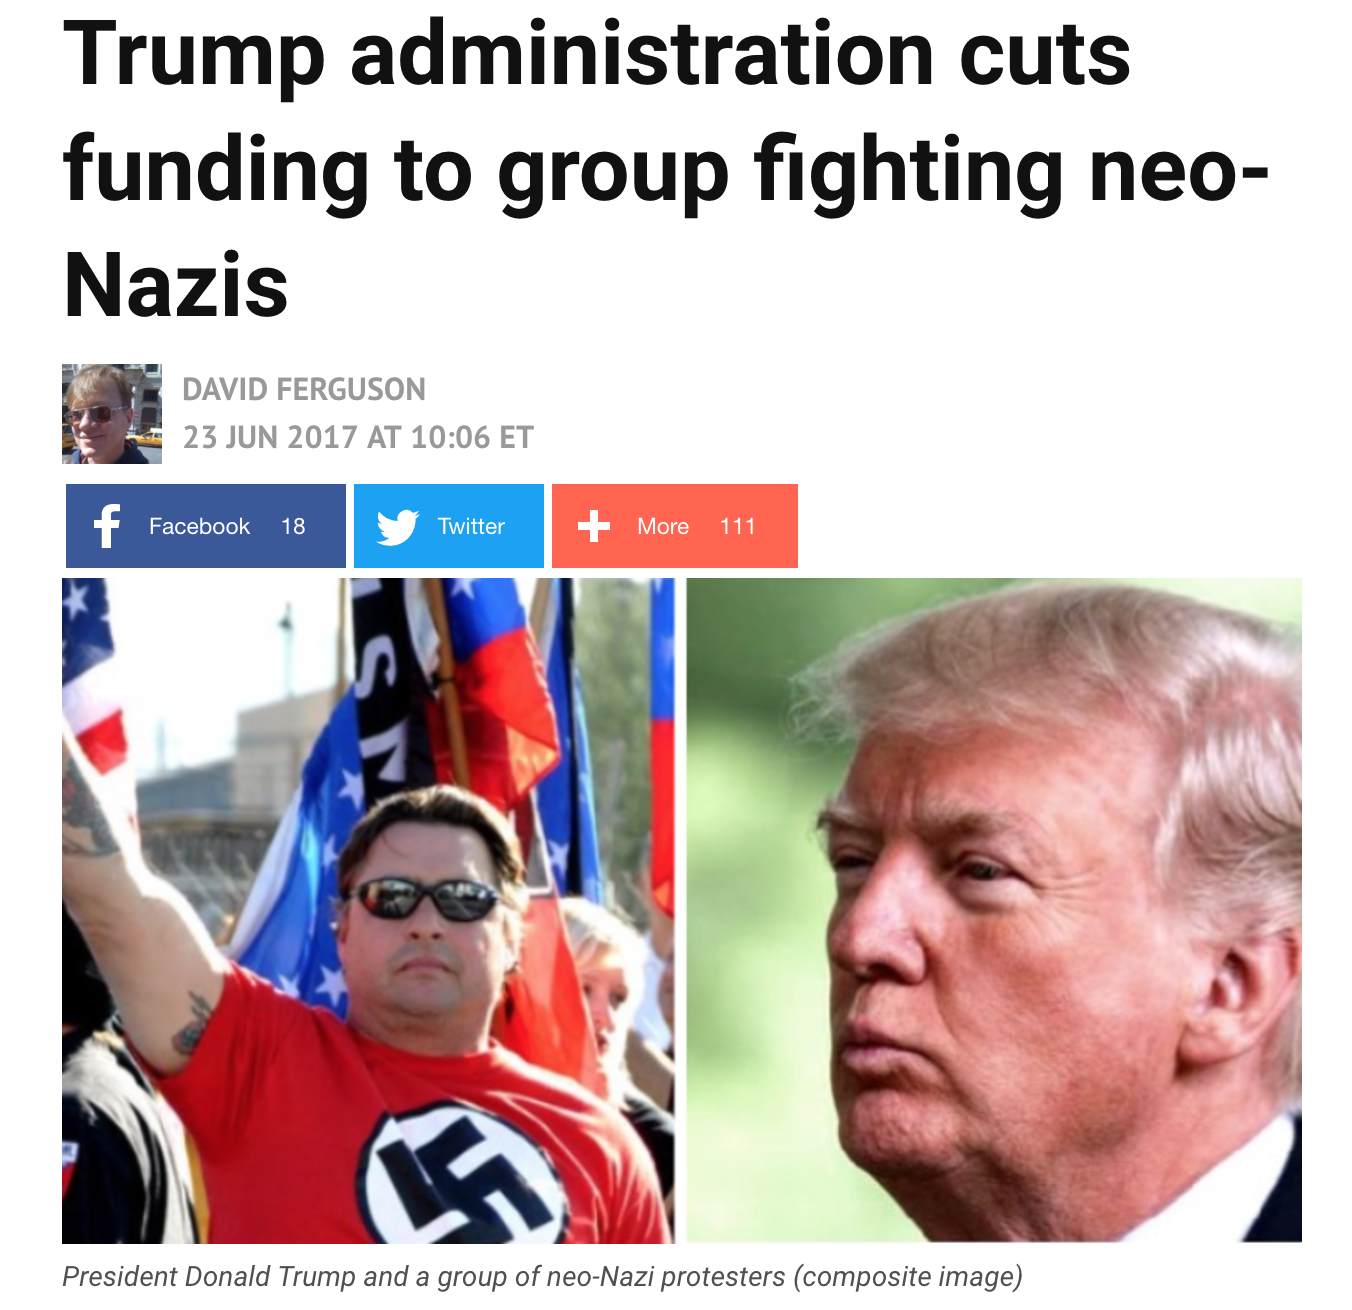 MSM Caught Lying AGAIN Claims That Anti-Trump Propaganda Group Are Neo-Nazi Fighters